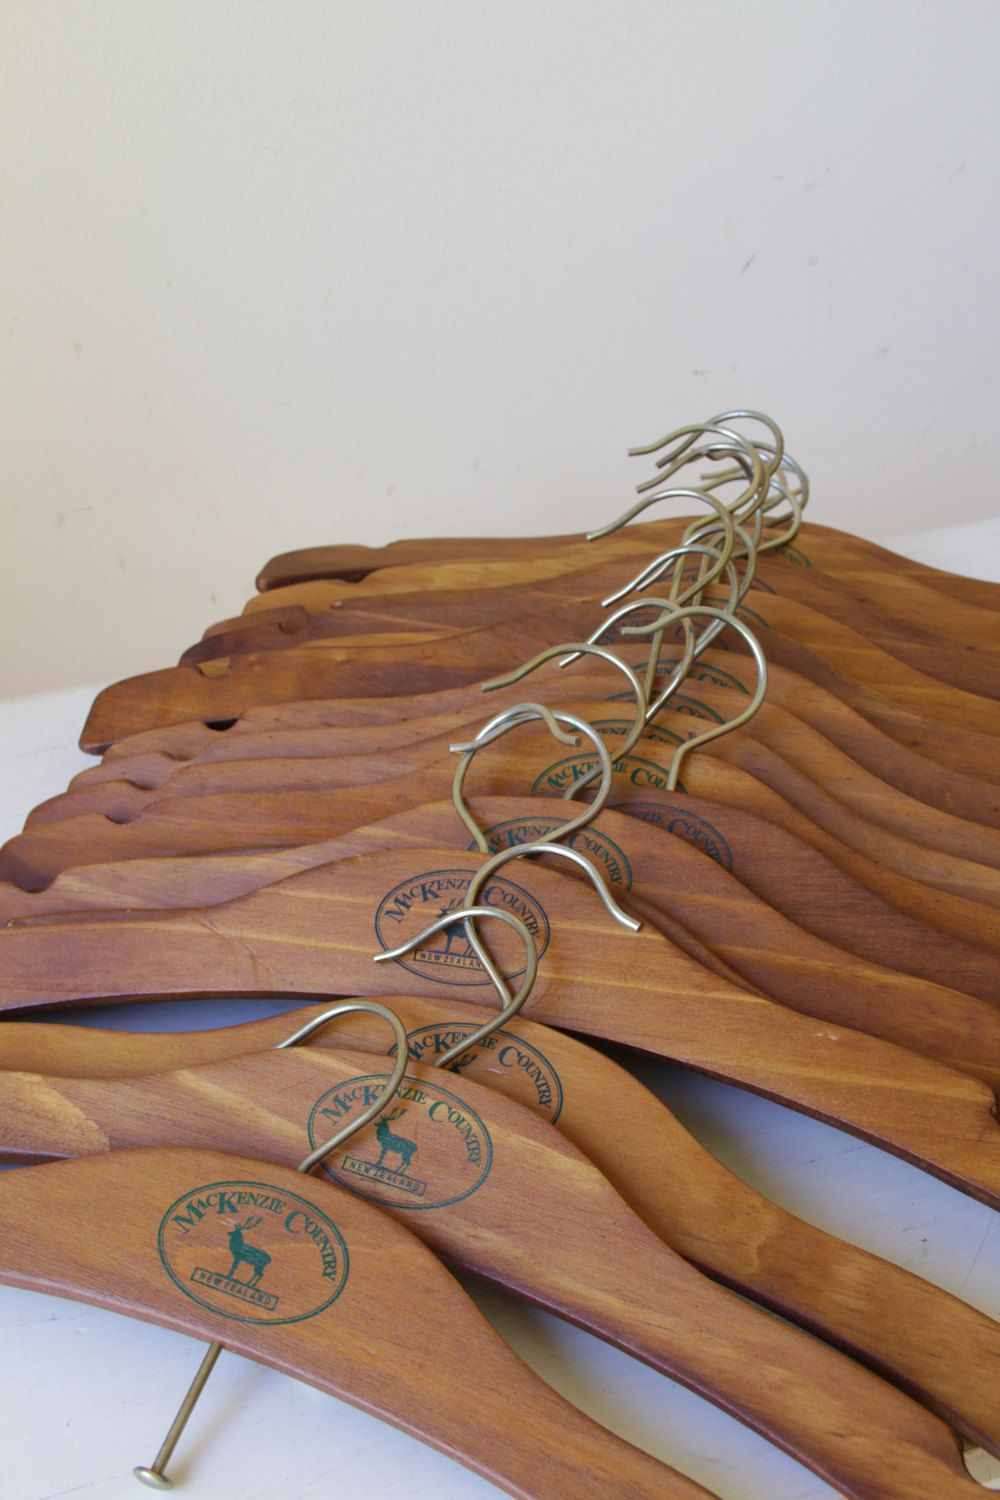 Sold Vintage Wooden Coat Hangers Wood Clothes Hangers Set Of Hangers Unique Gift For Him Made In New Wooden Coat Hangers Wood Clothes Unique Gifts For Him